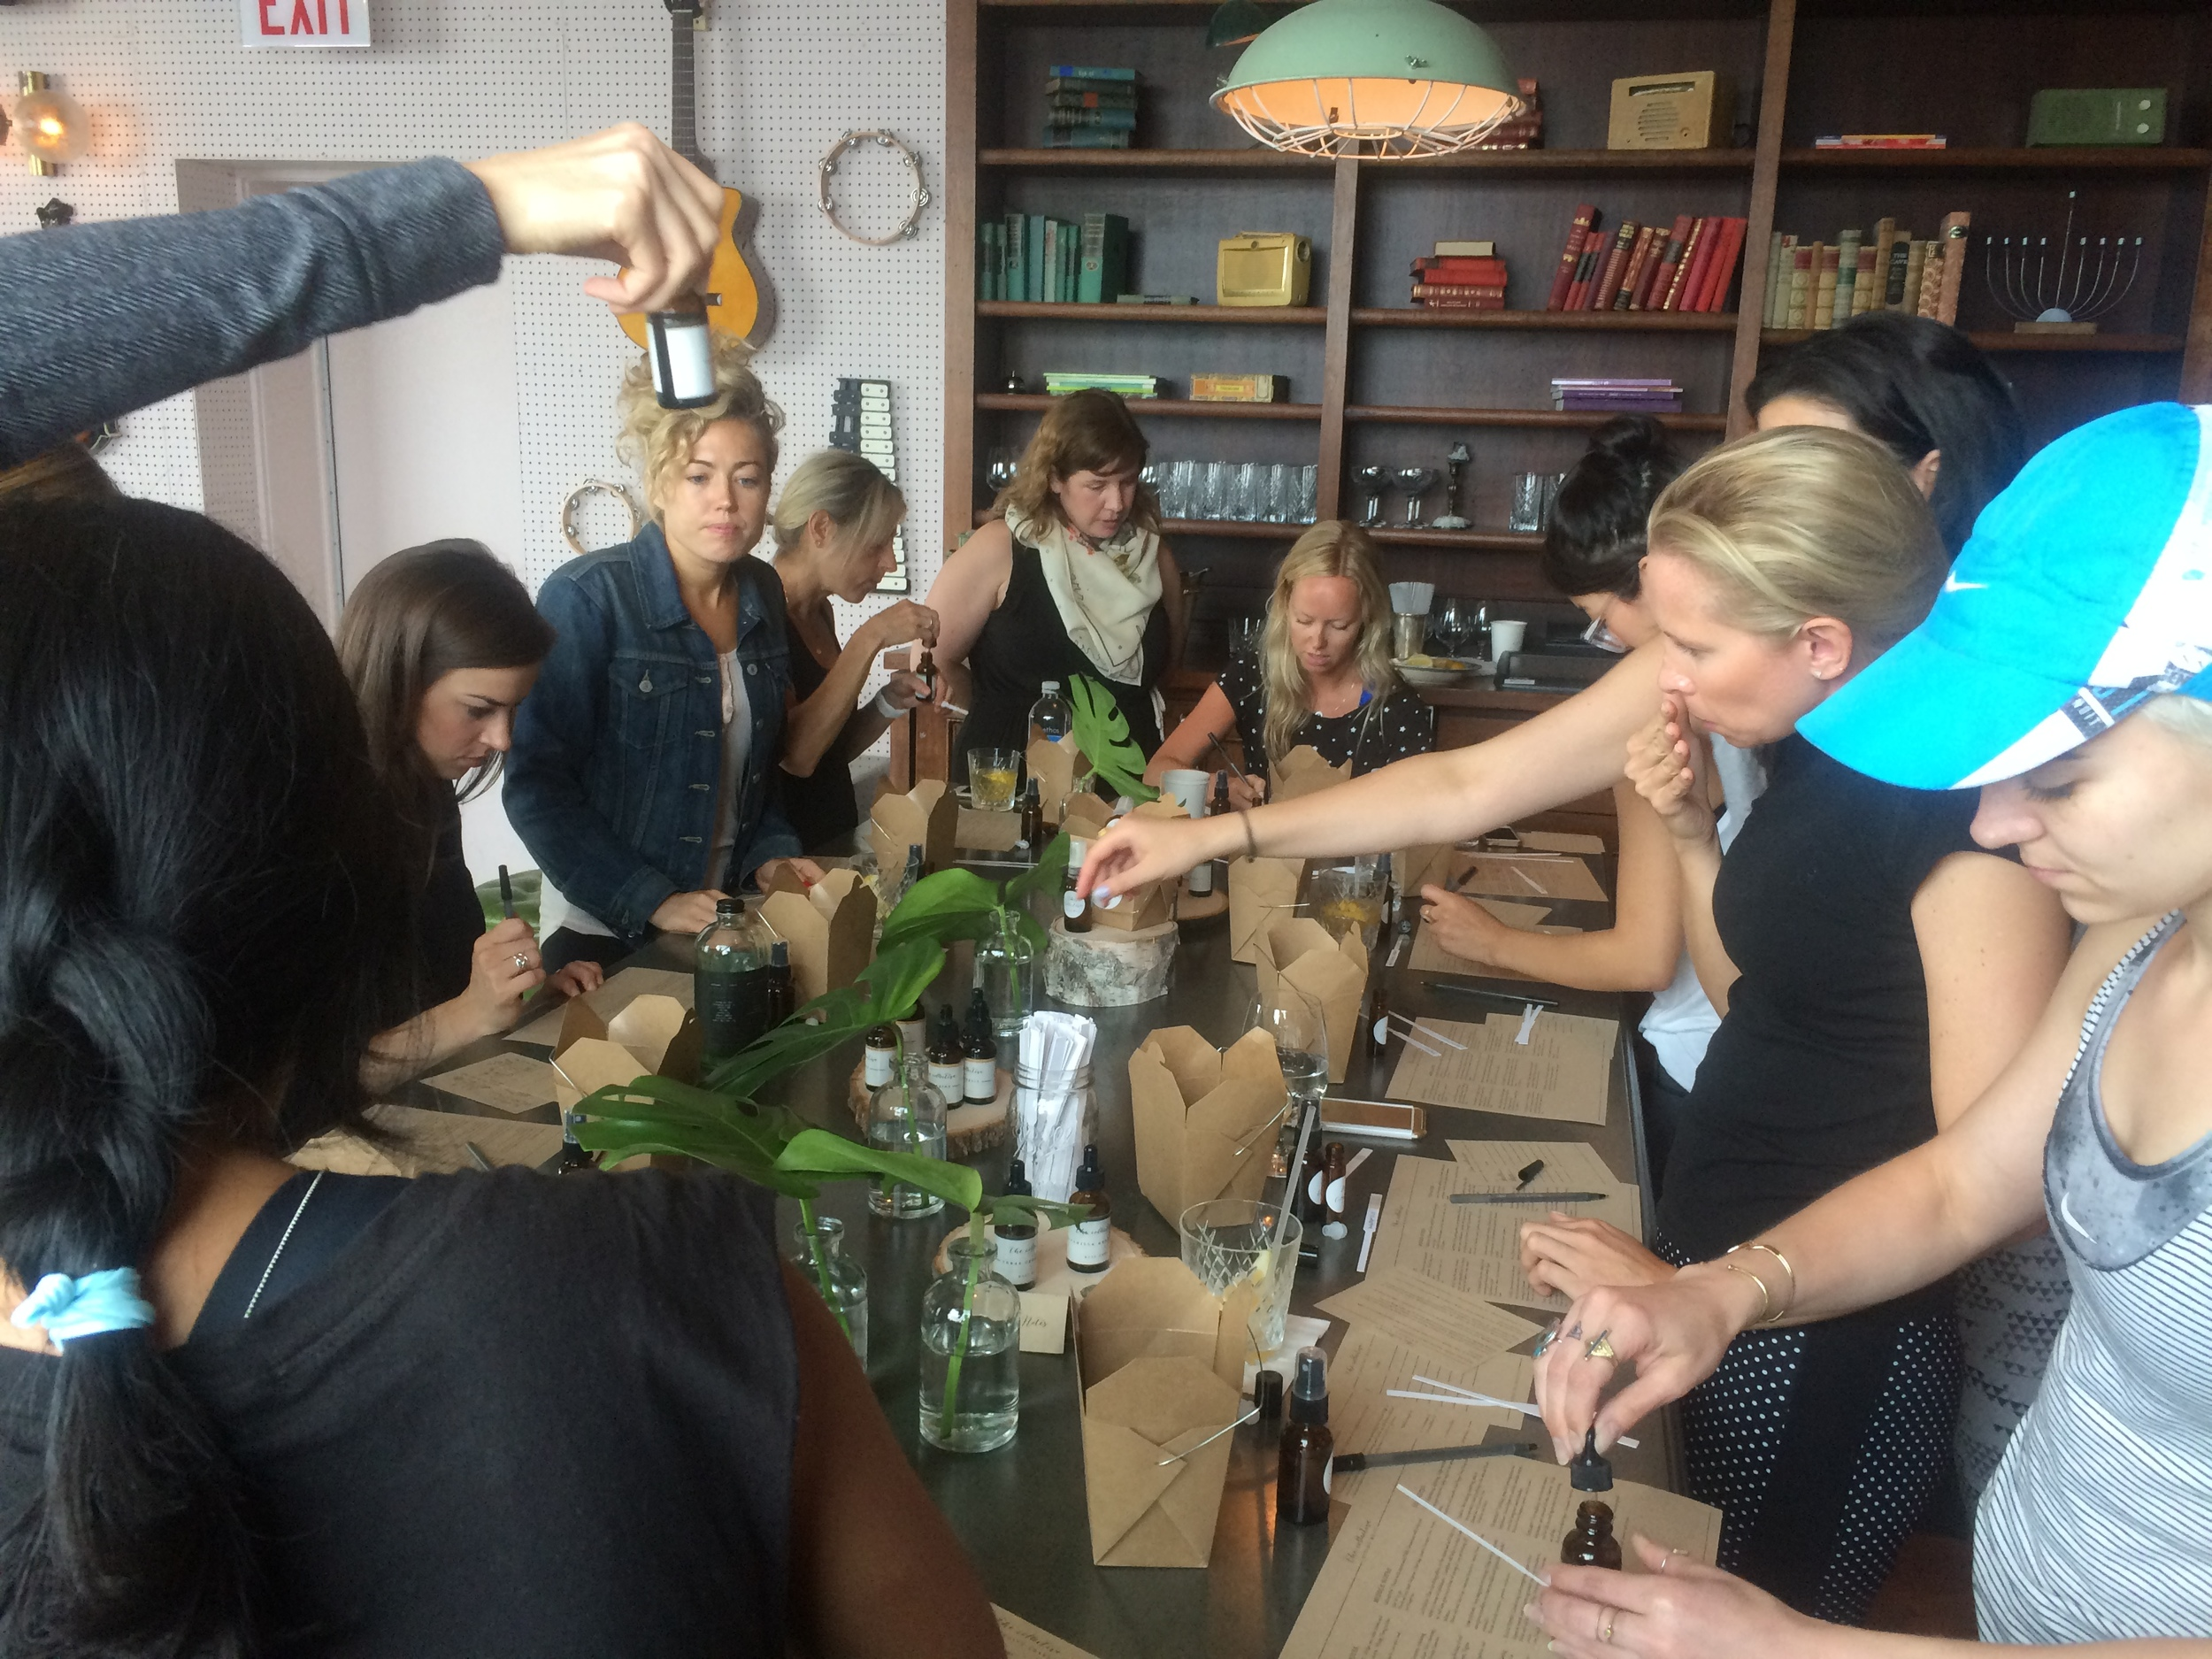 yoga-plus-the-collective-chicago-essential-oil-custom-fragrance-blending-workshop-soho-house-chicago_5059.JPG